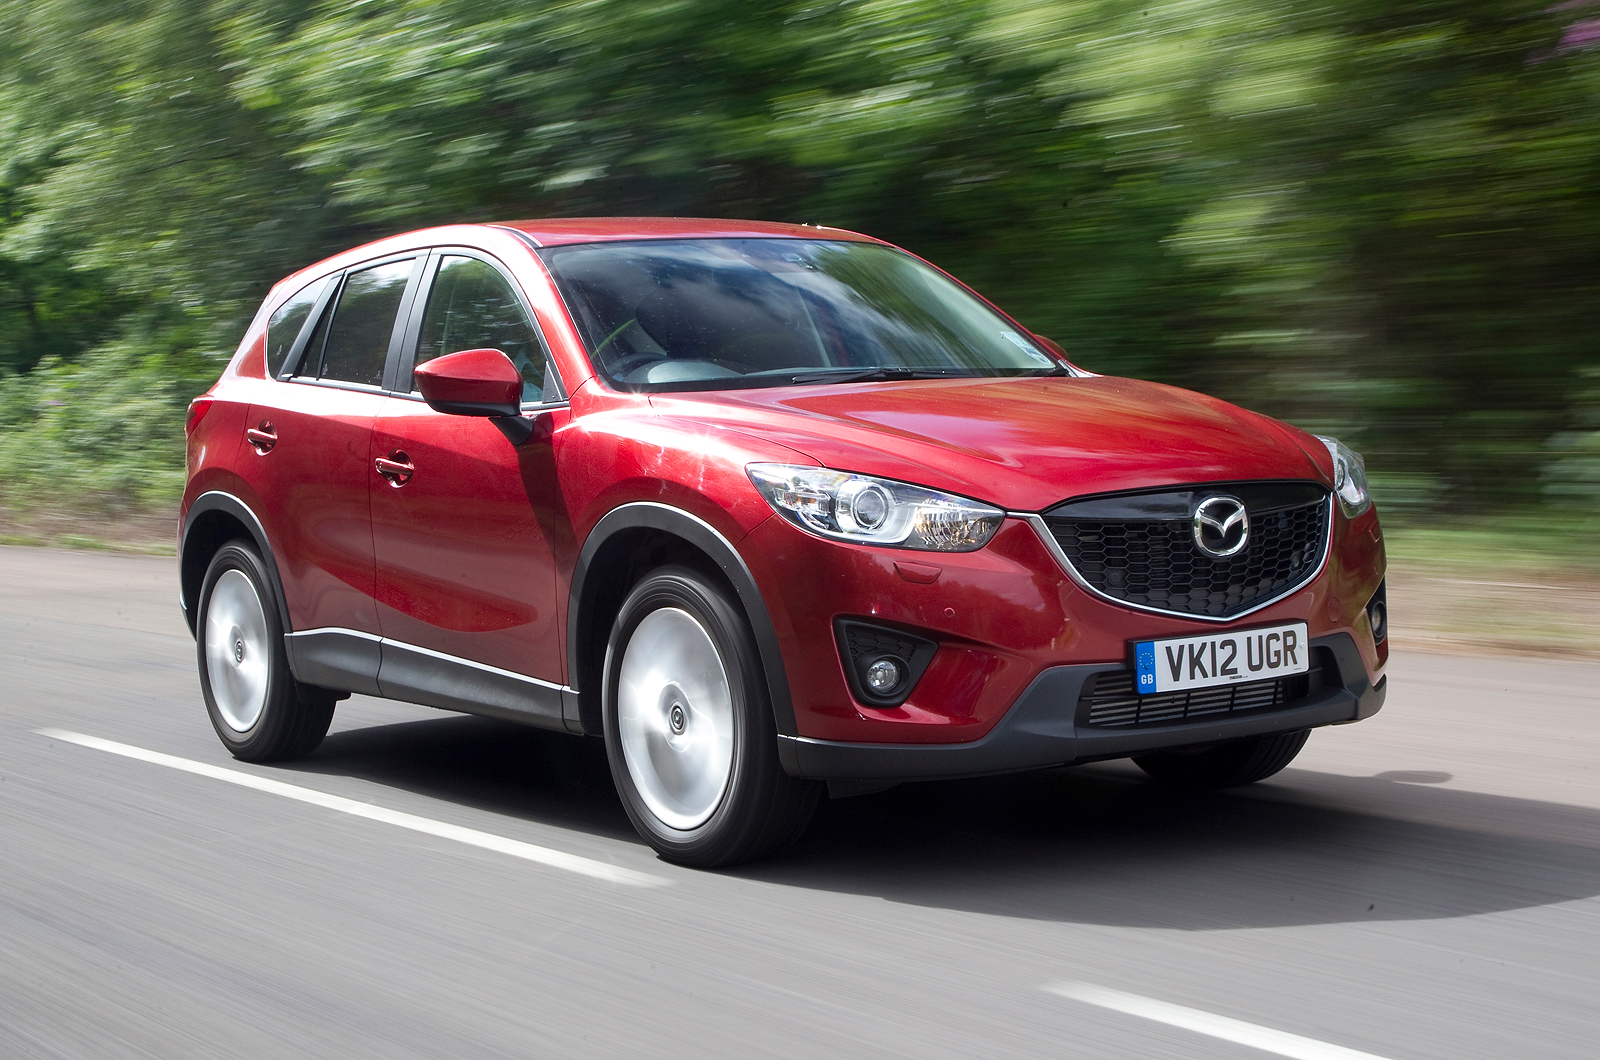 2013 mazda cx 5 review car information news reviews. Black Bedroom Furniture Sets. Home Design Ideas